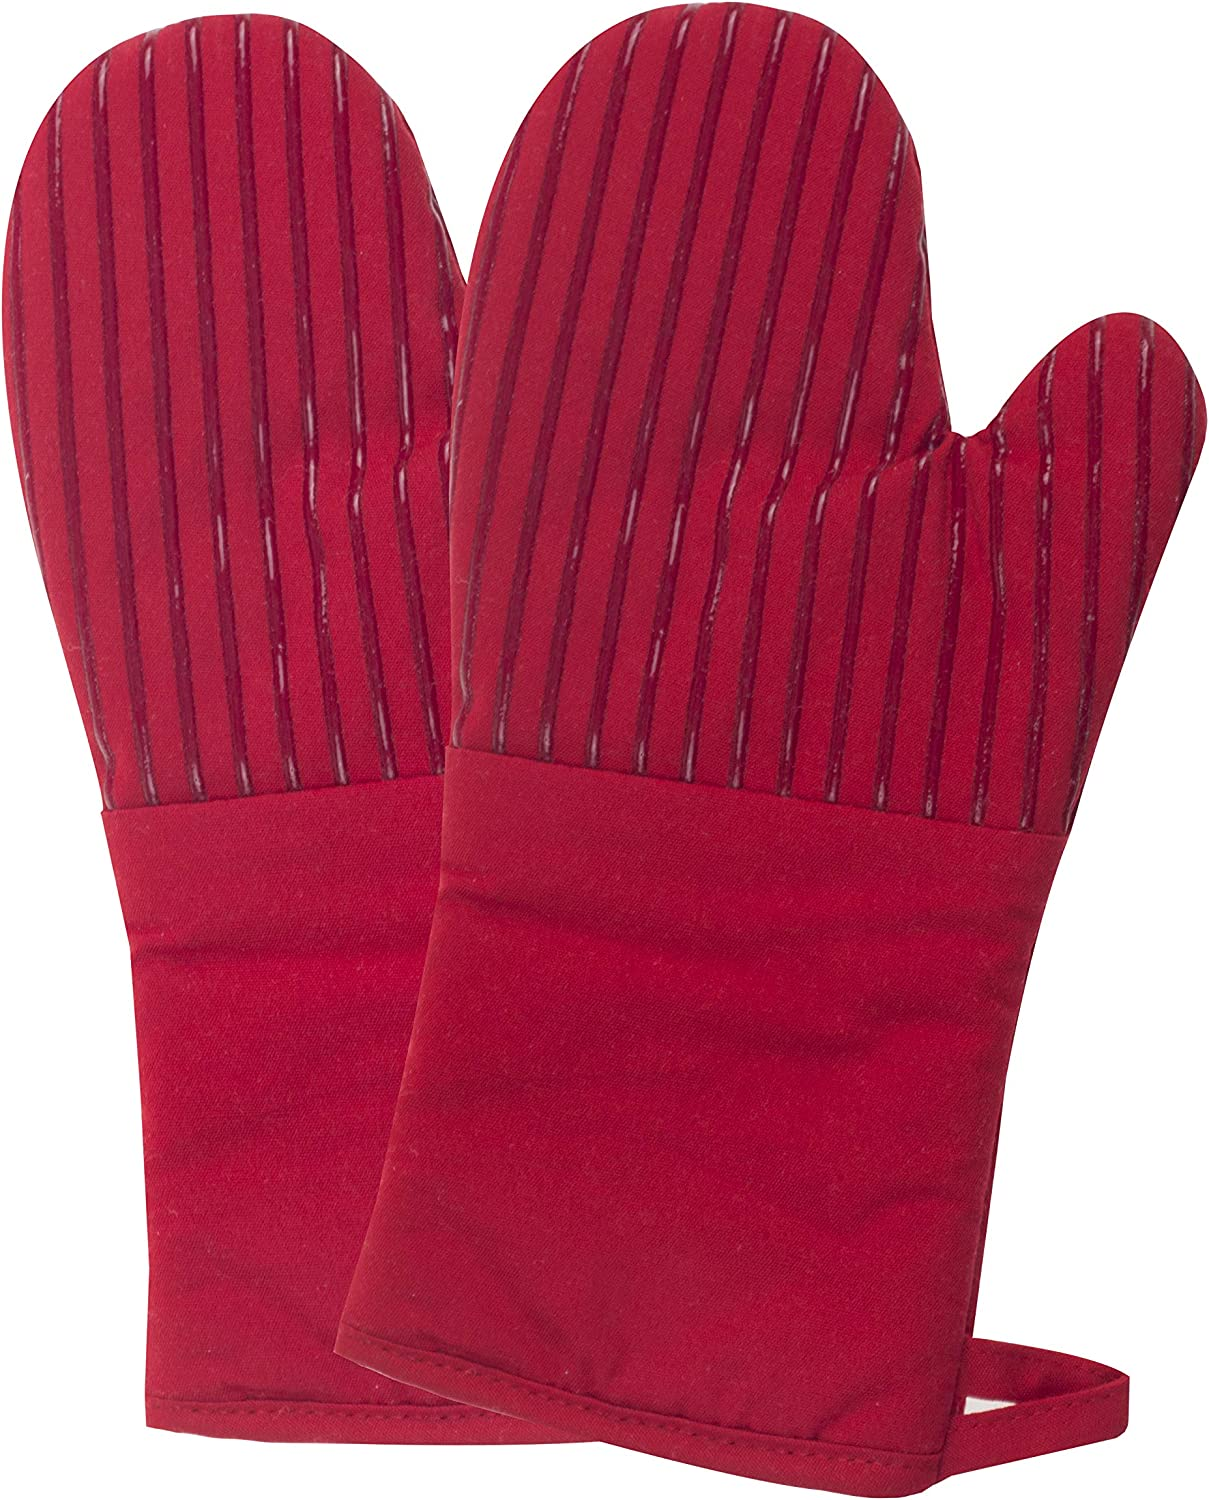 Joyhalo Oven Mitts with Cotton Lining and Non Slip Silicone Stripes - 500 Degrees Heat Resistant Gloves for Oven, Grill, Flexible & Extra Long Kitchen Hot Pot Holder for Baking, Cooking, Wine Red